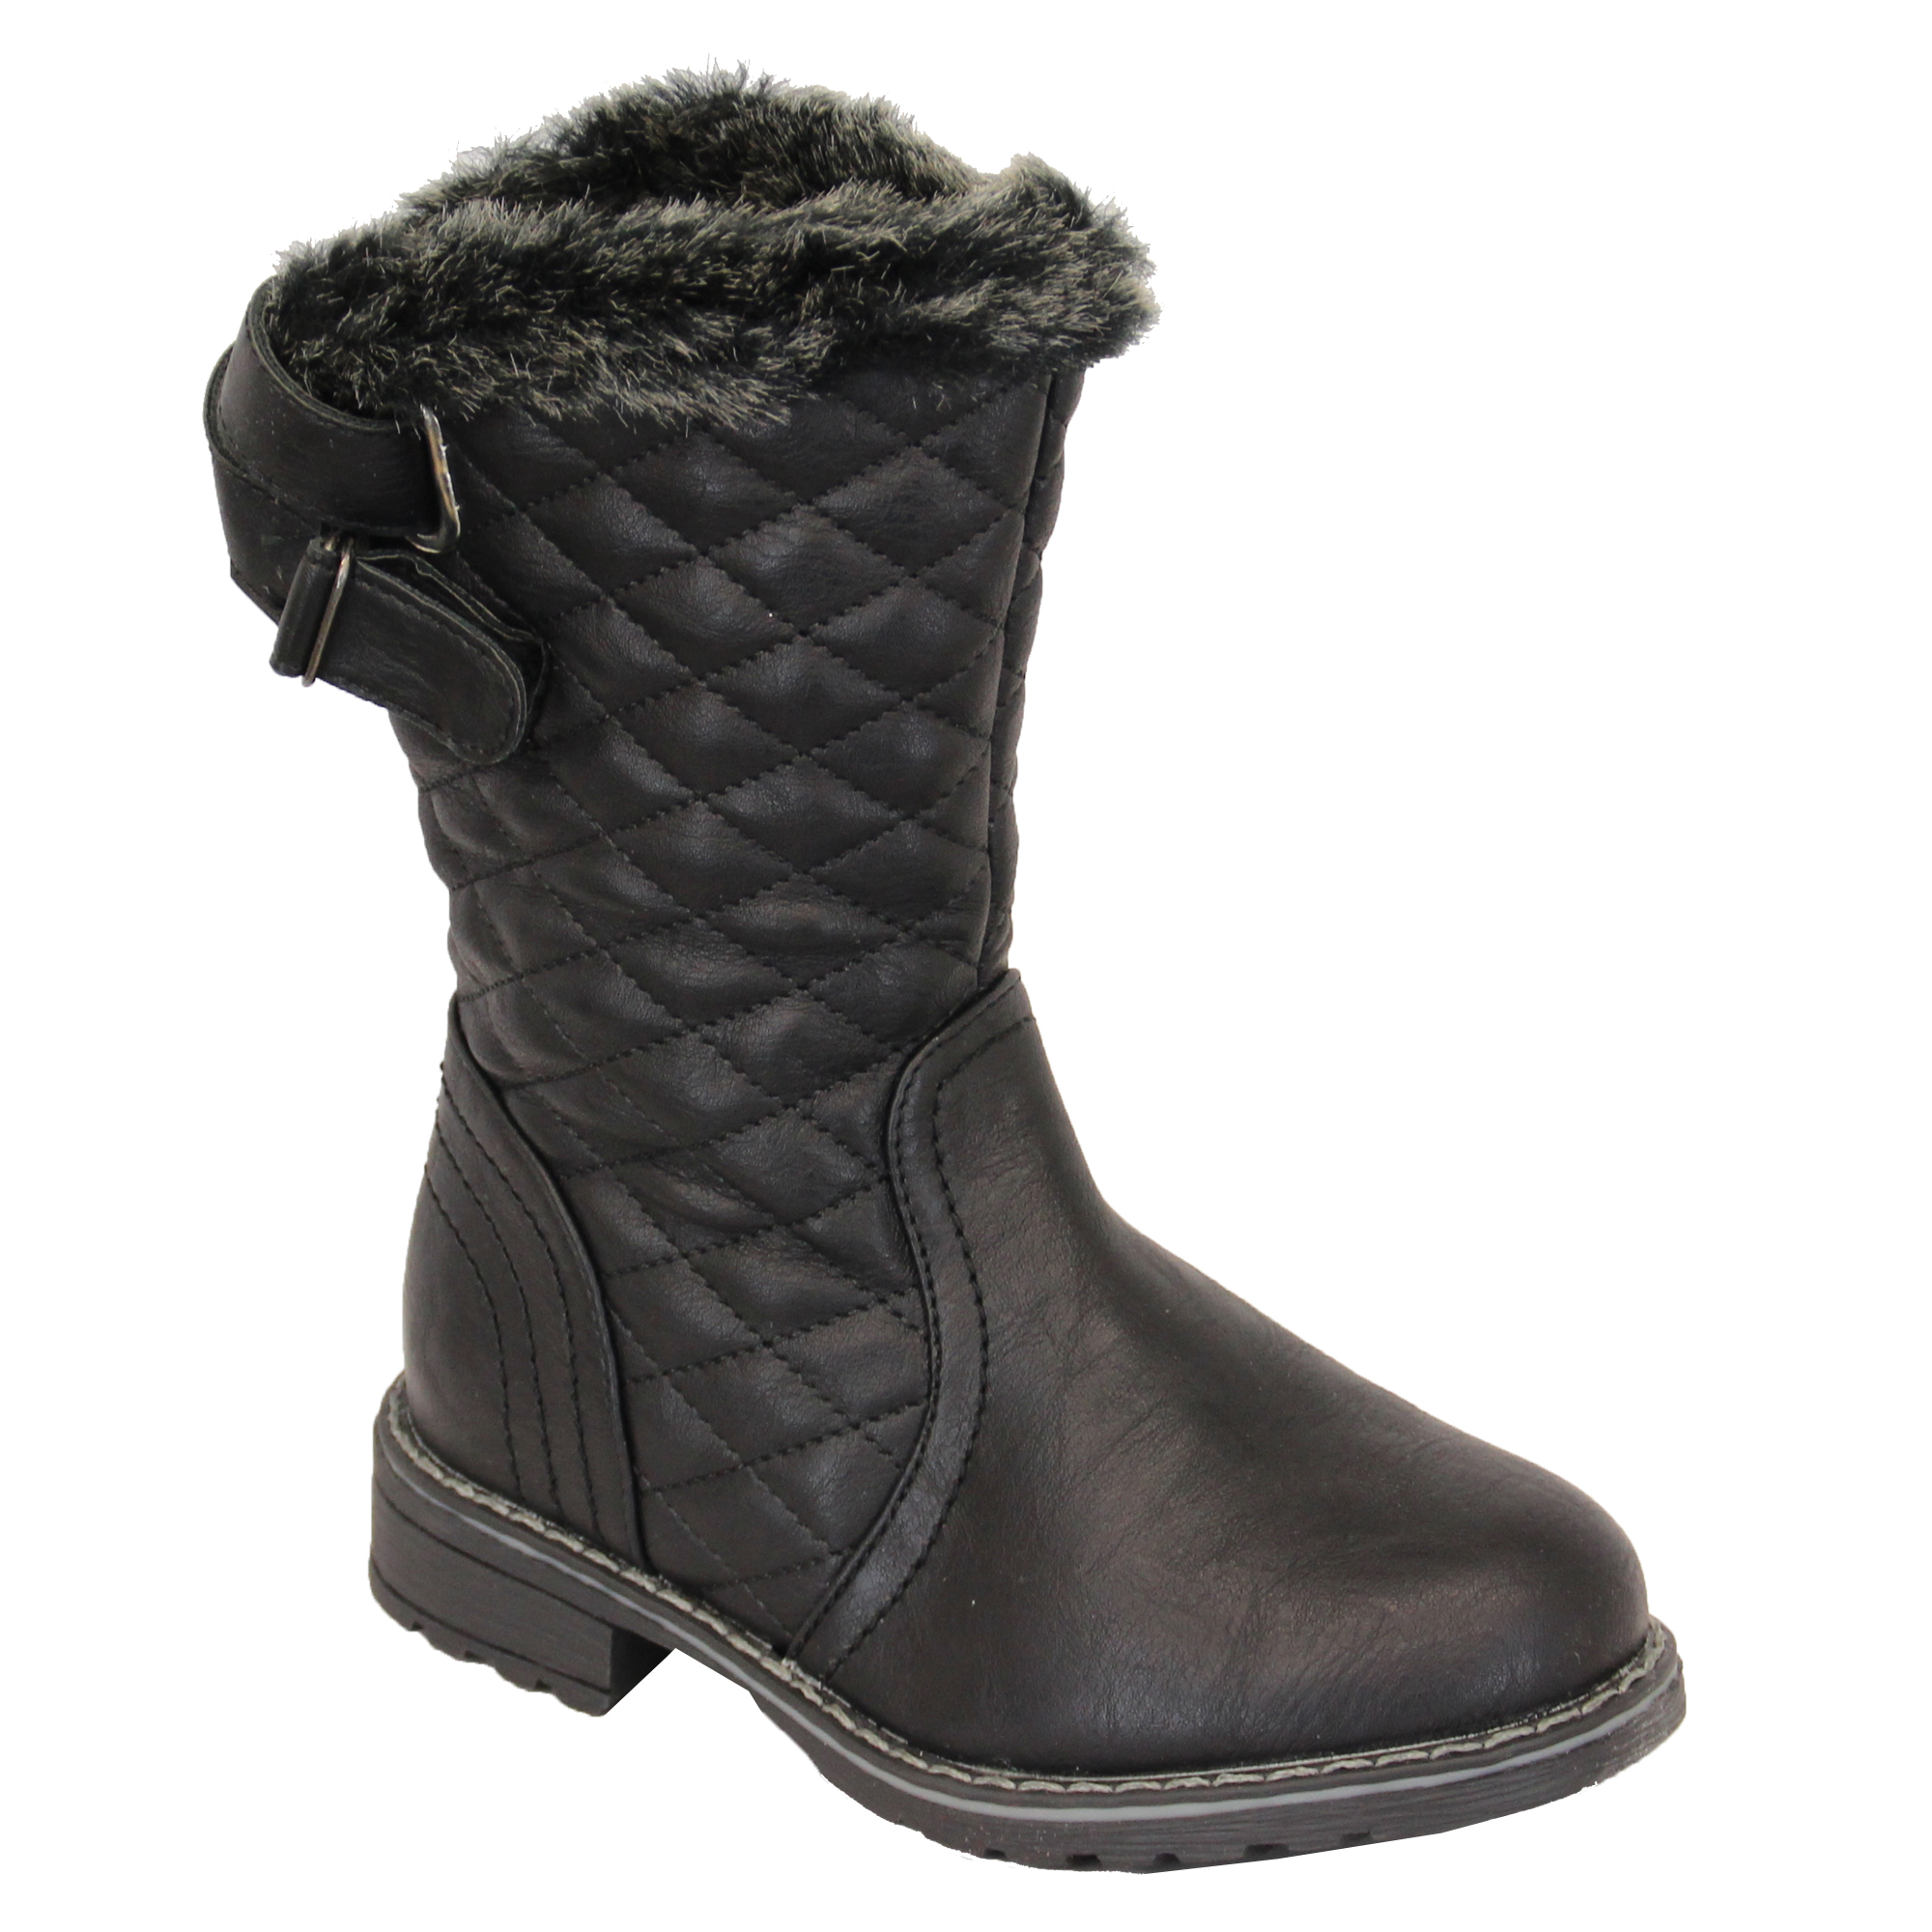 Girls Snow Boots Kids Shoes Leather Look High Ankle Top